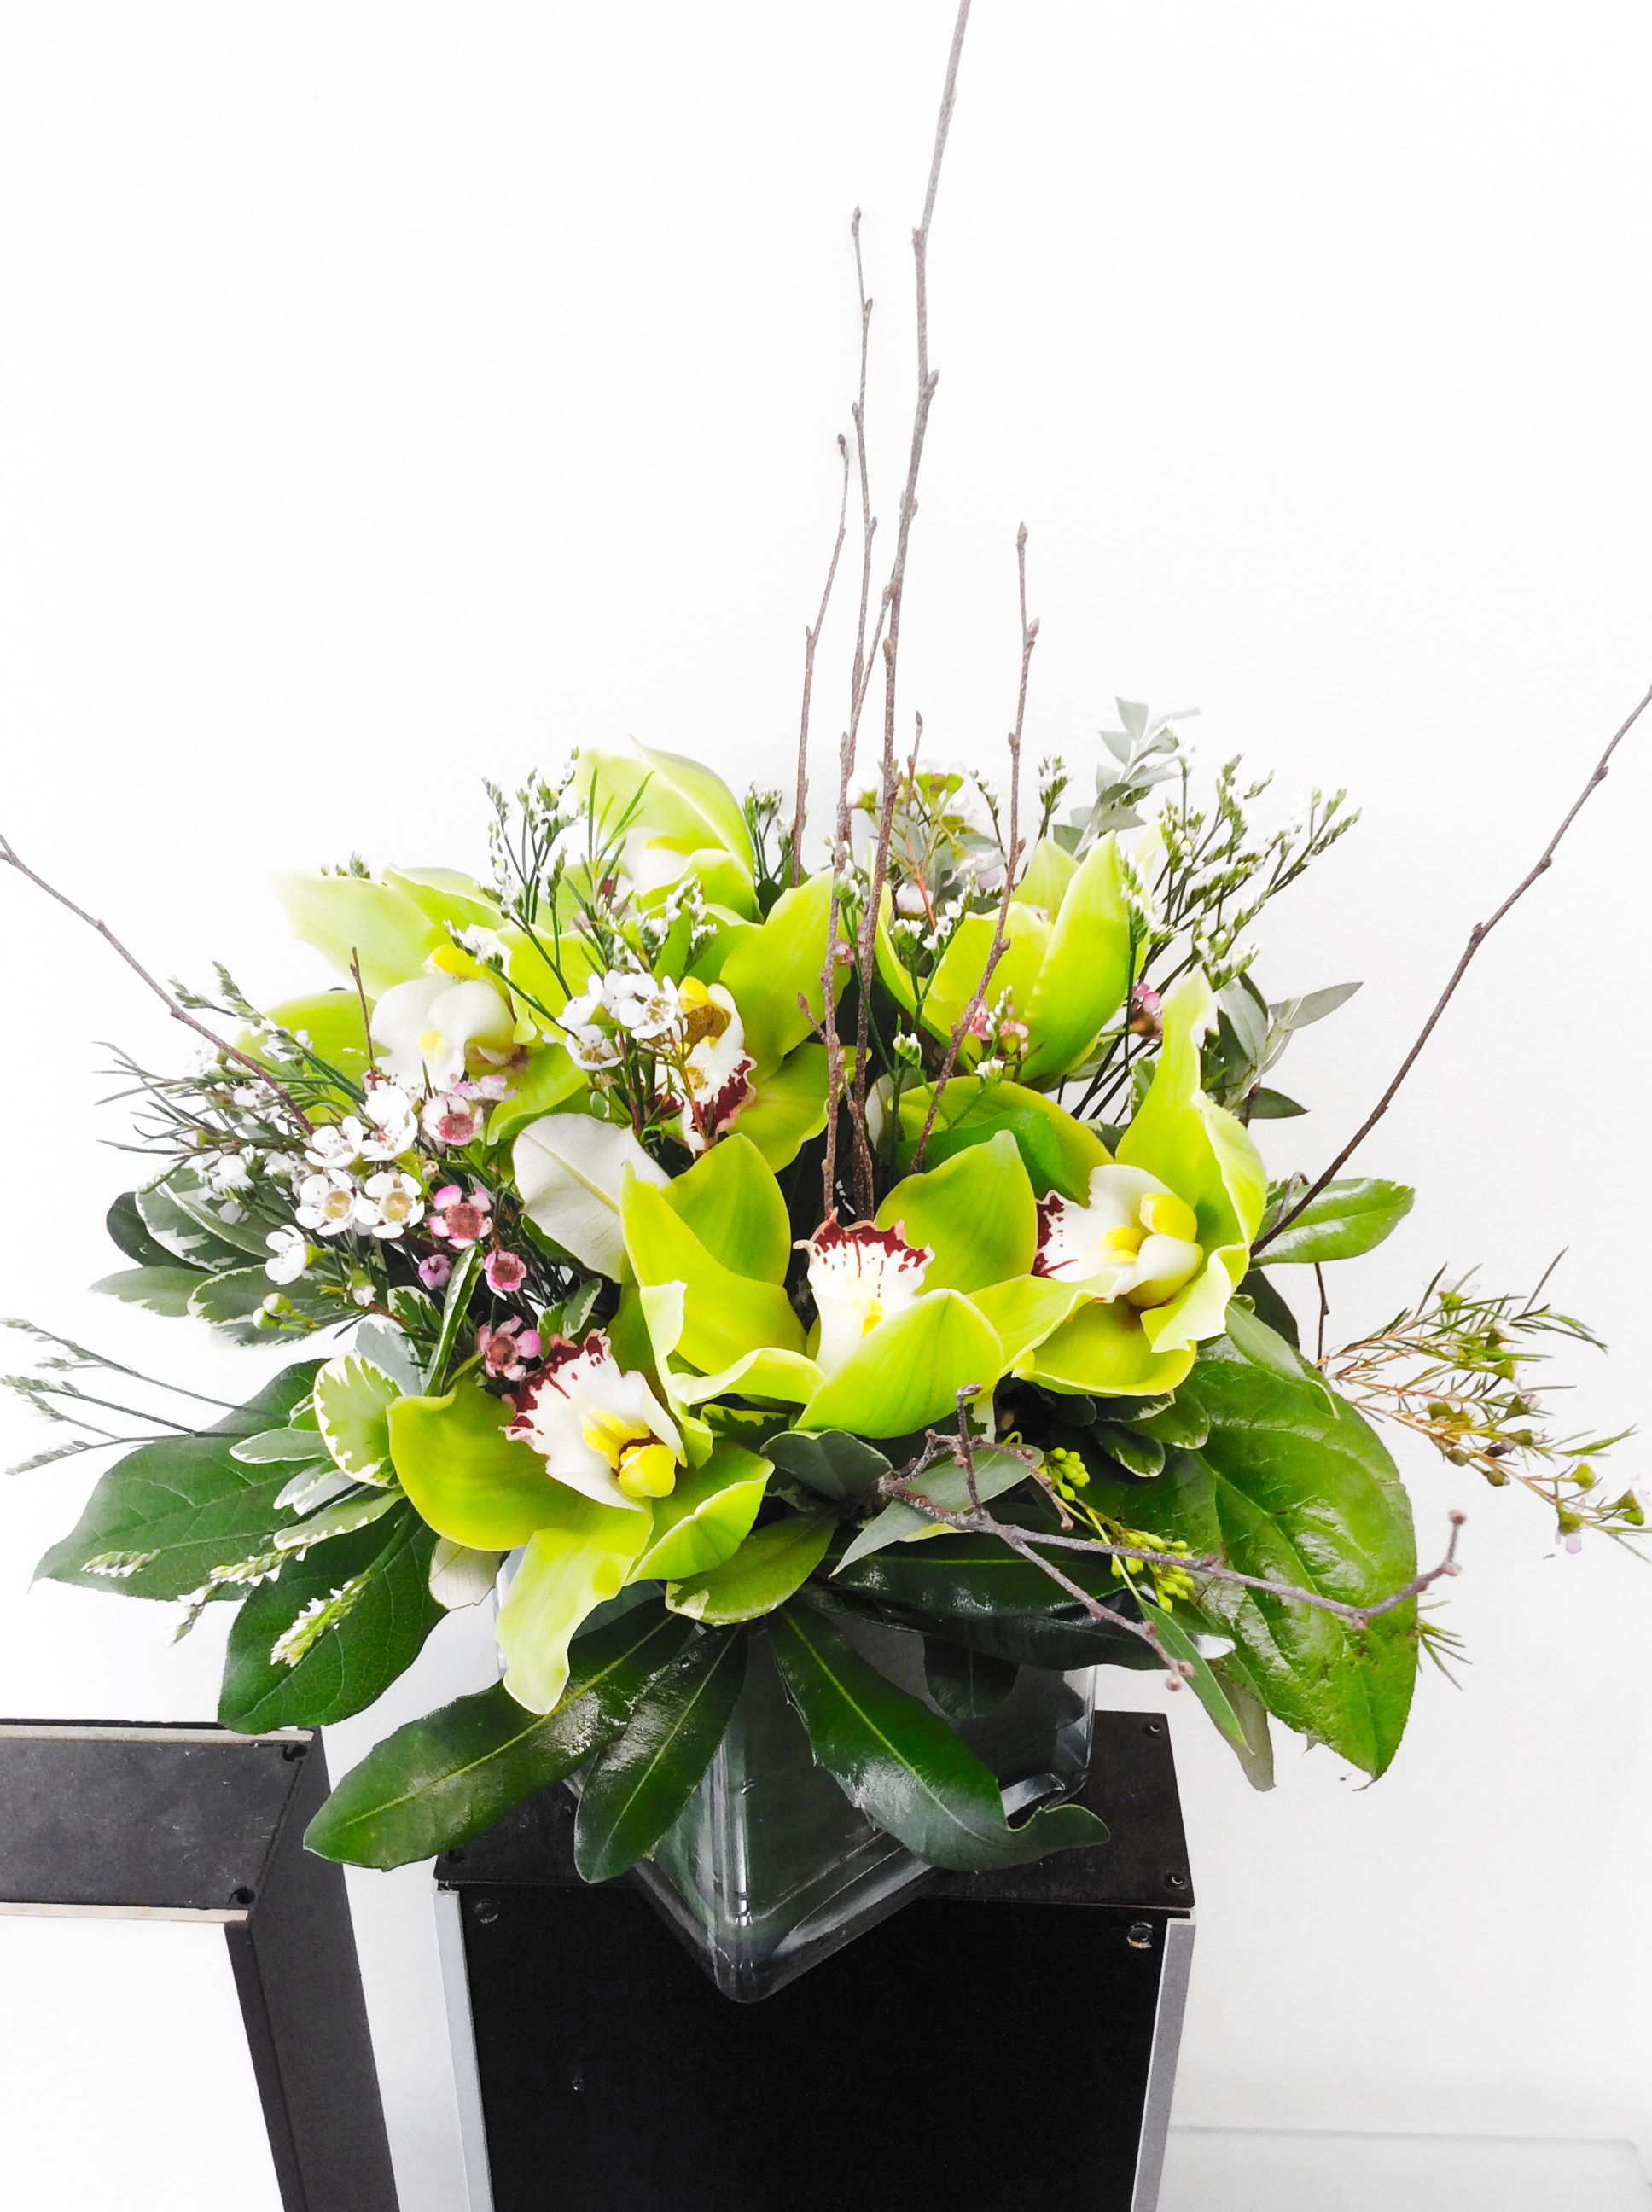 flowers delivered in vase of a custom floral arrangement in a square vase designed by flowers within a custom floral arrangement in a square vase designed by flowers naturally in